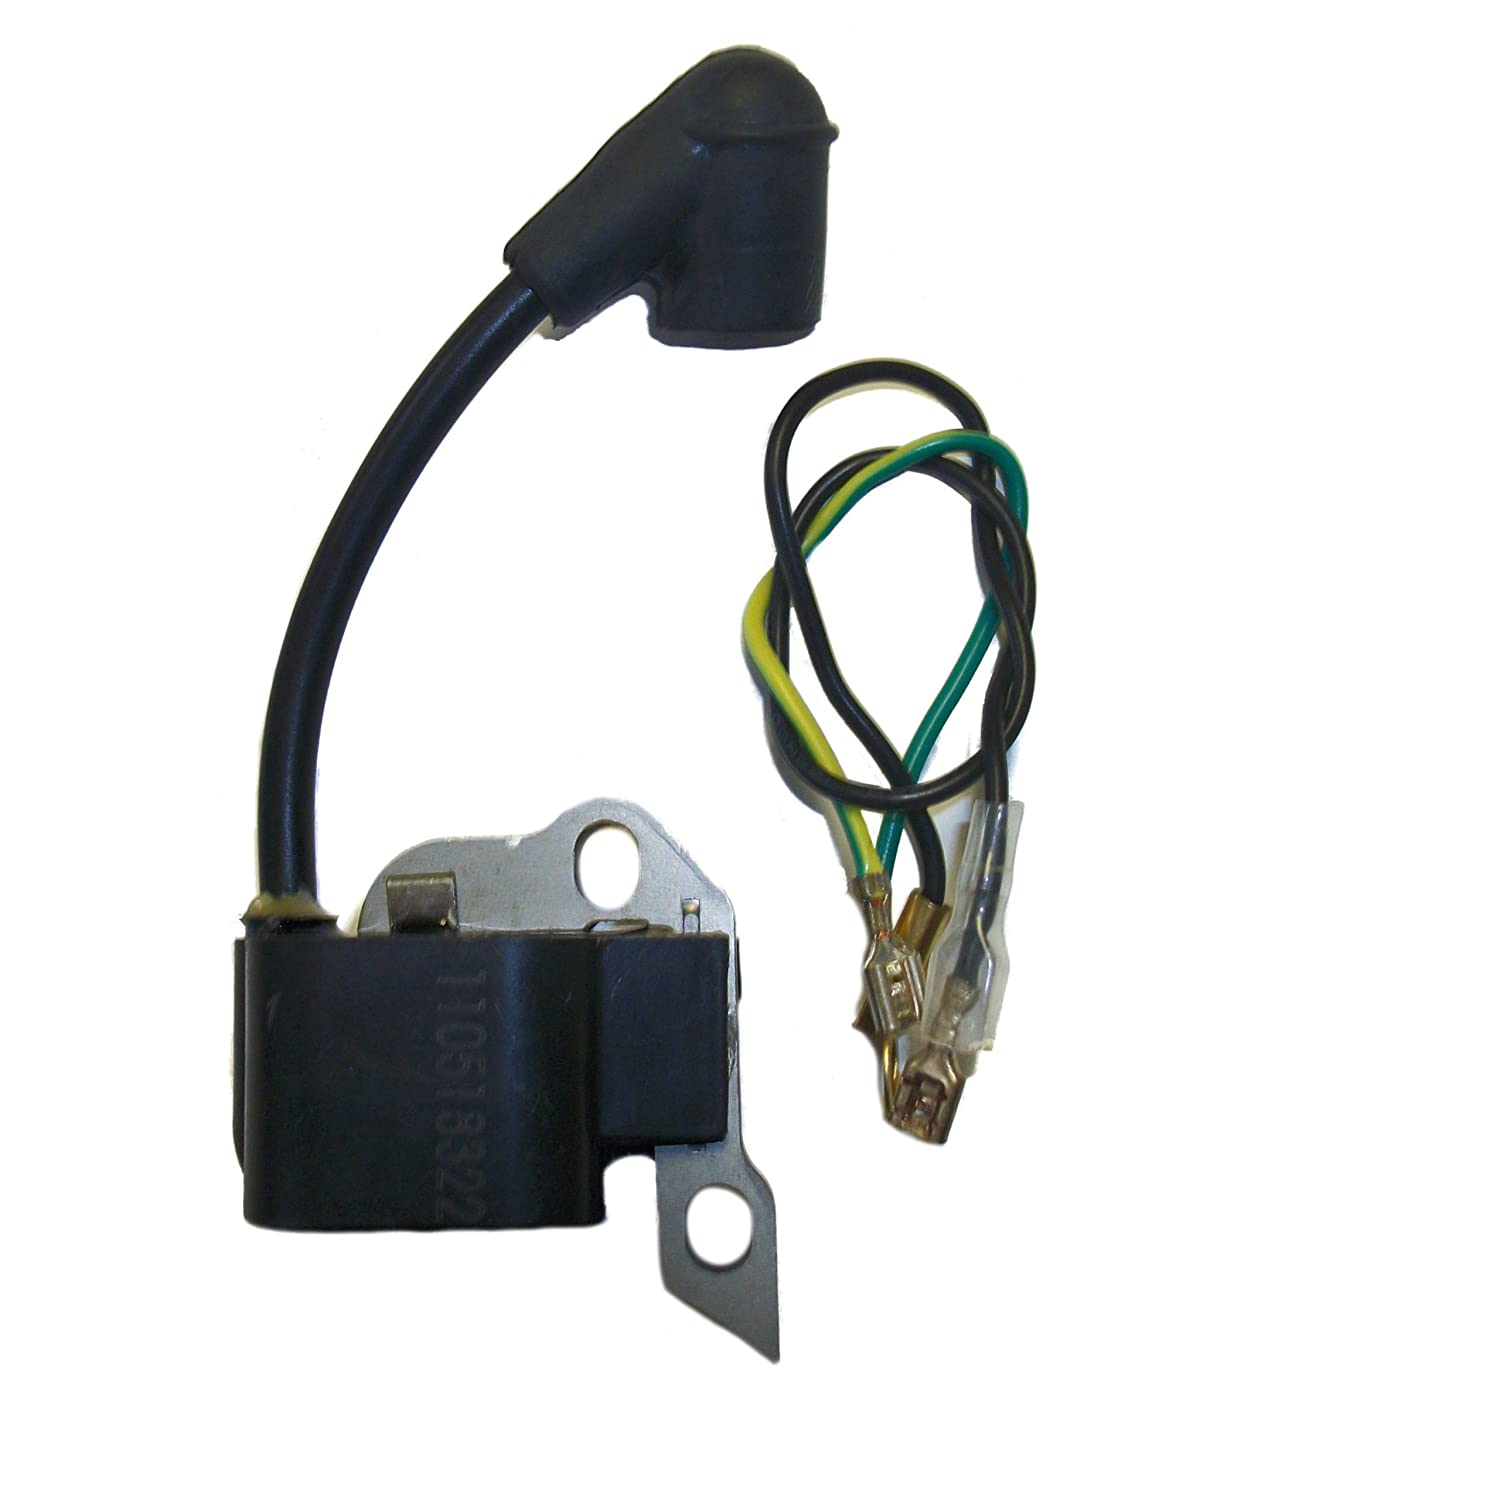 IGNITION COIL MODULE FITS STIHL MS170 MS180 017 018 ENGINE MOTOR CHAINSAW